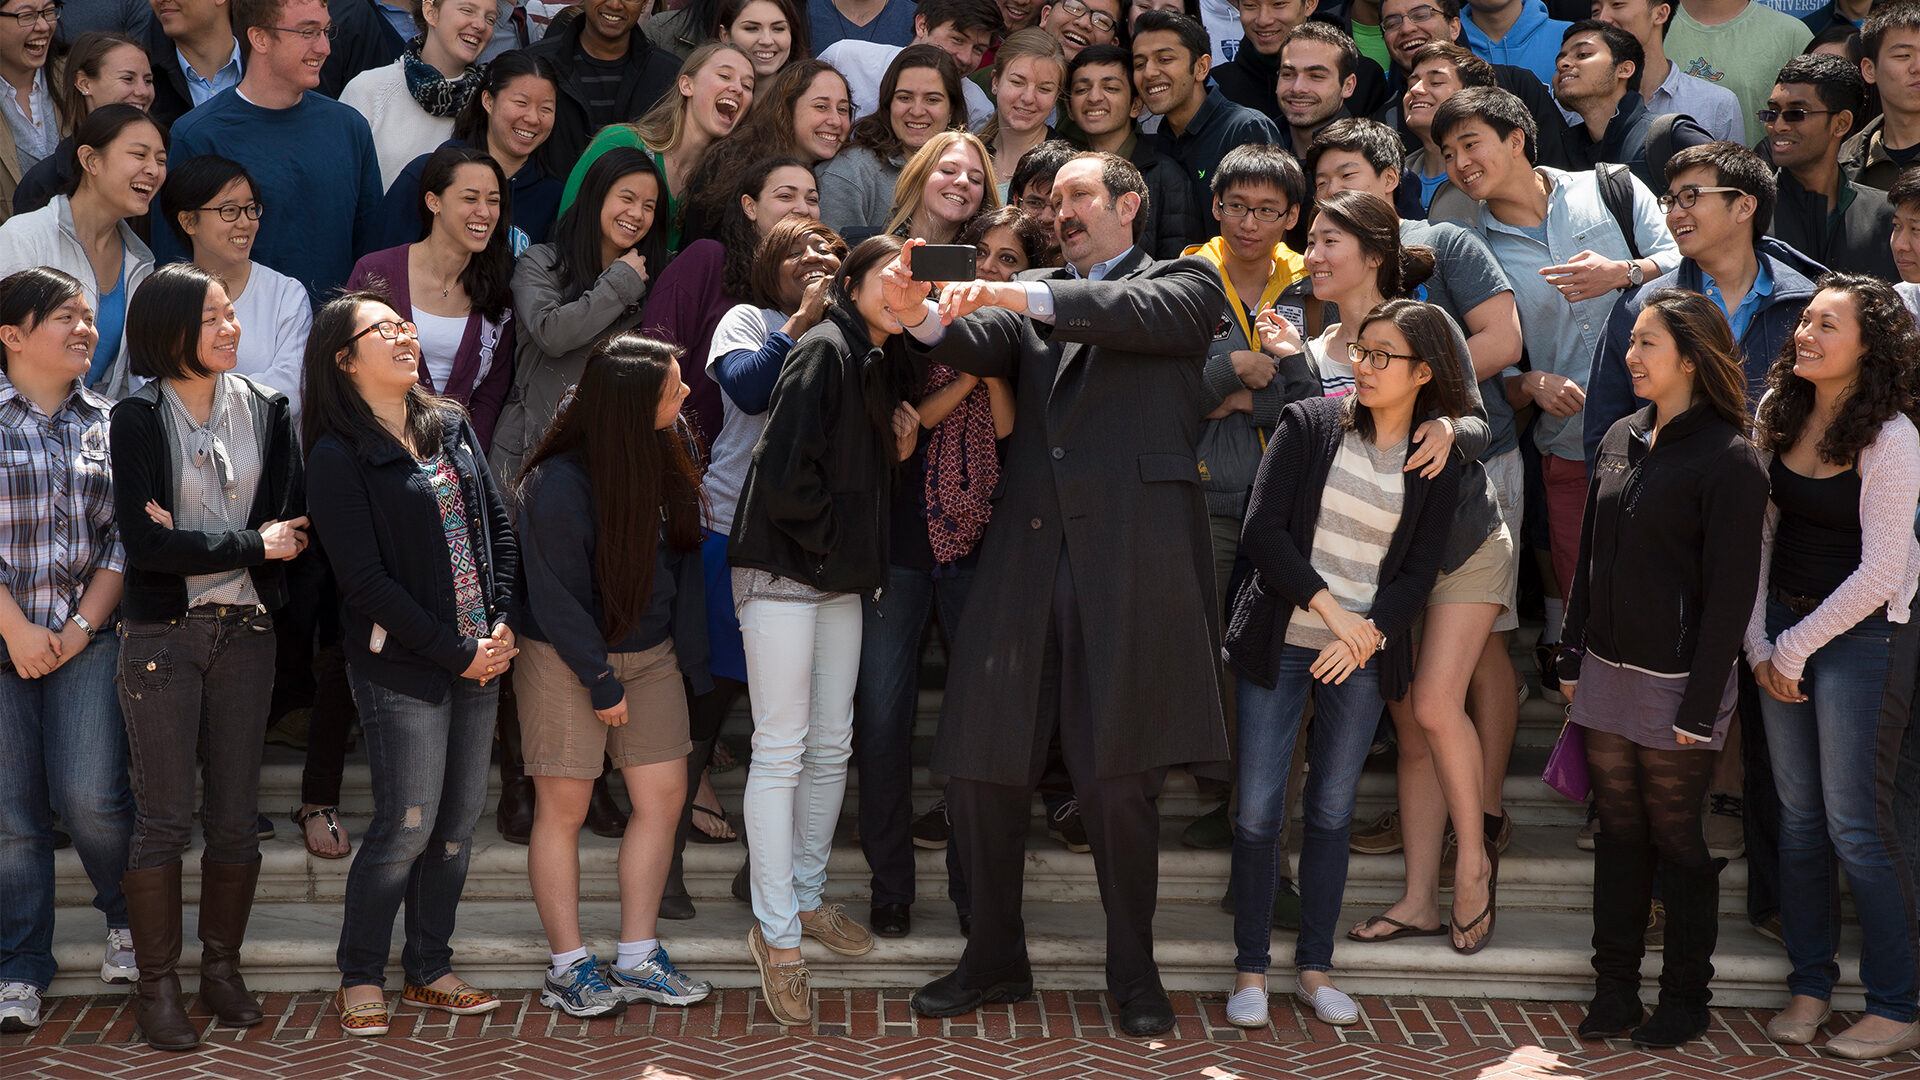 A large group of students take a selfie with a professor.